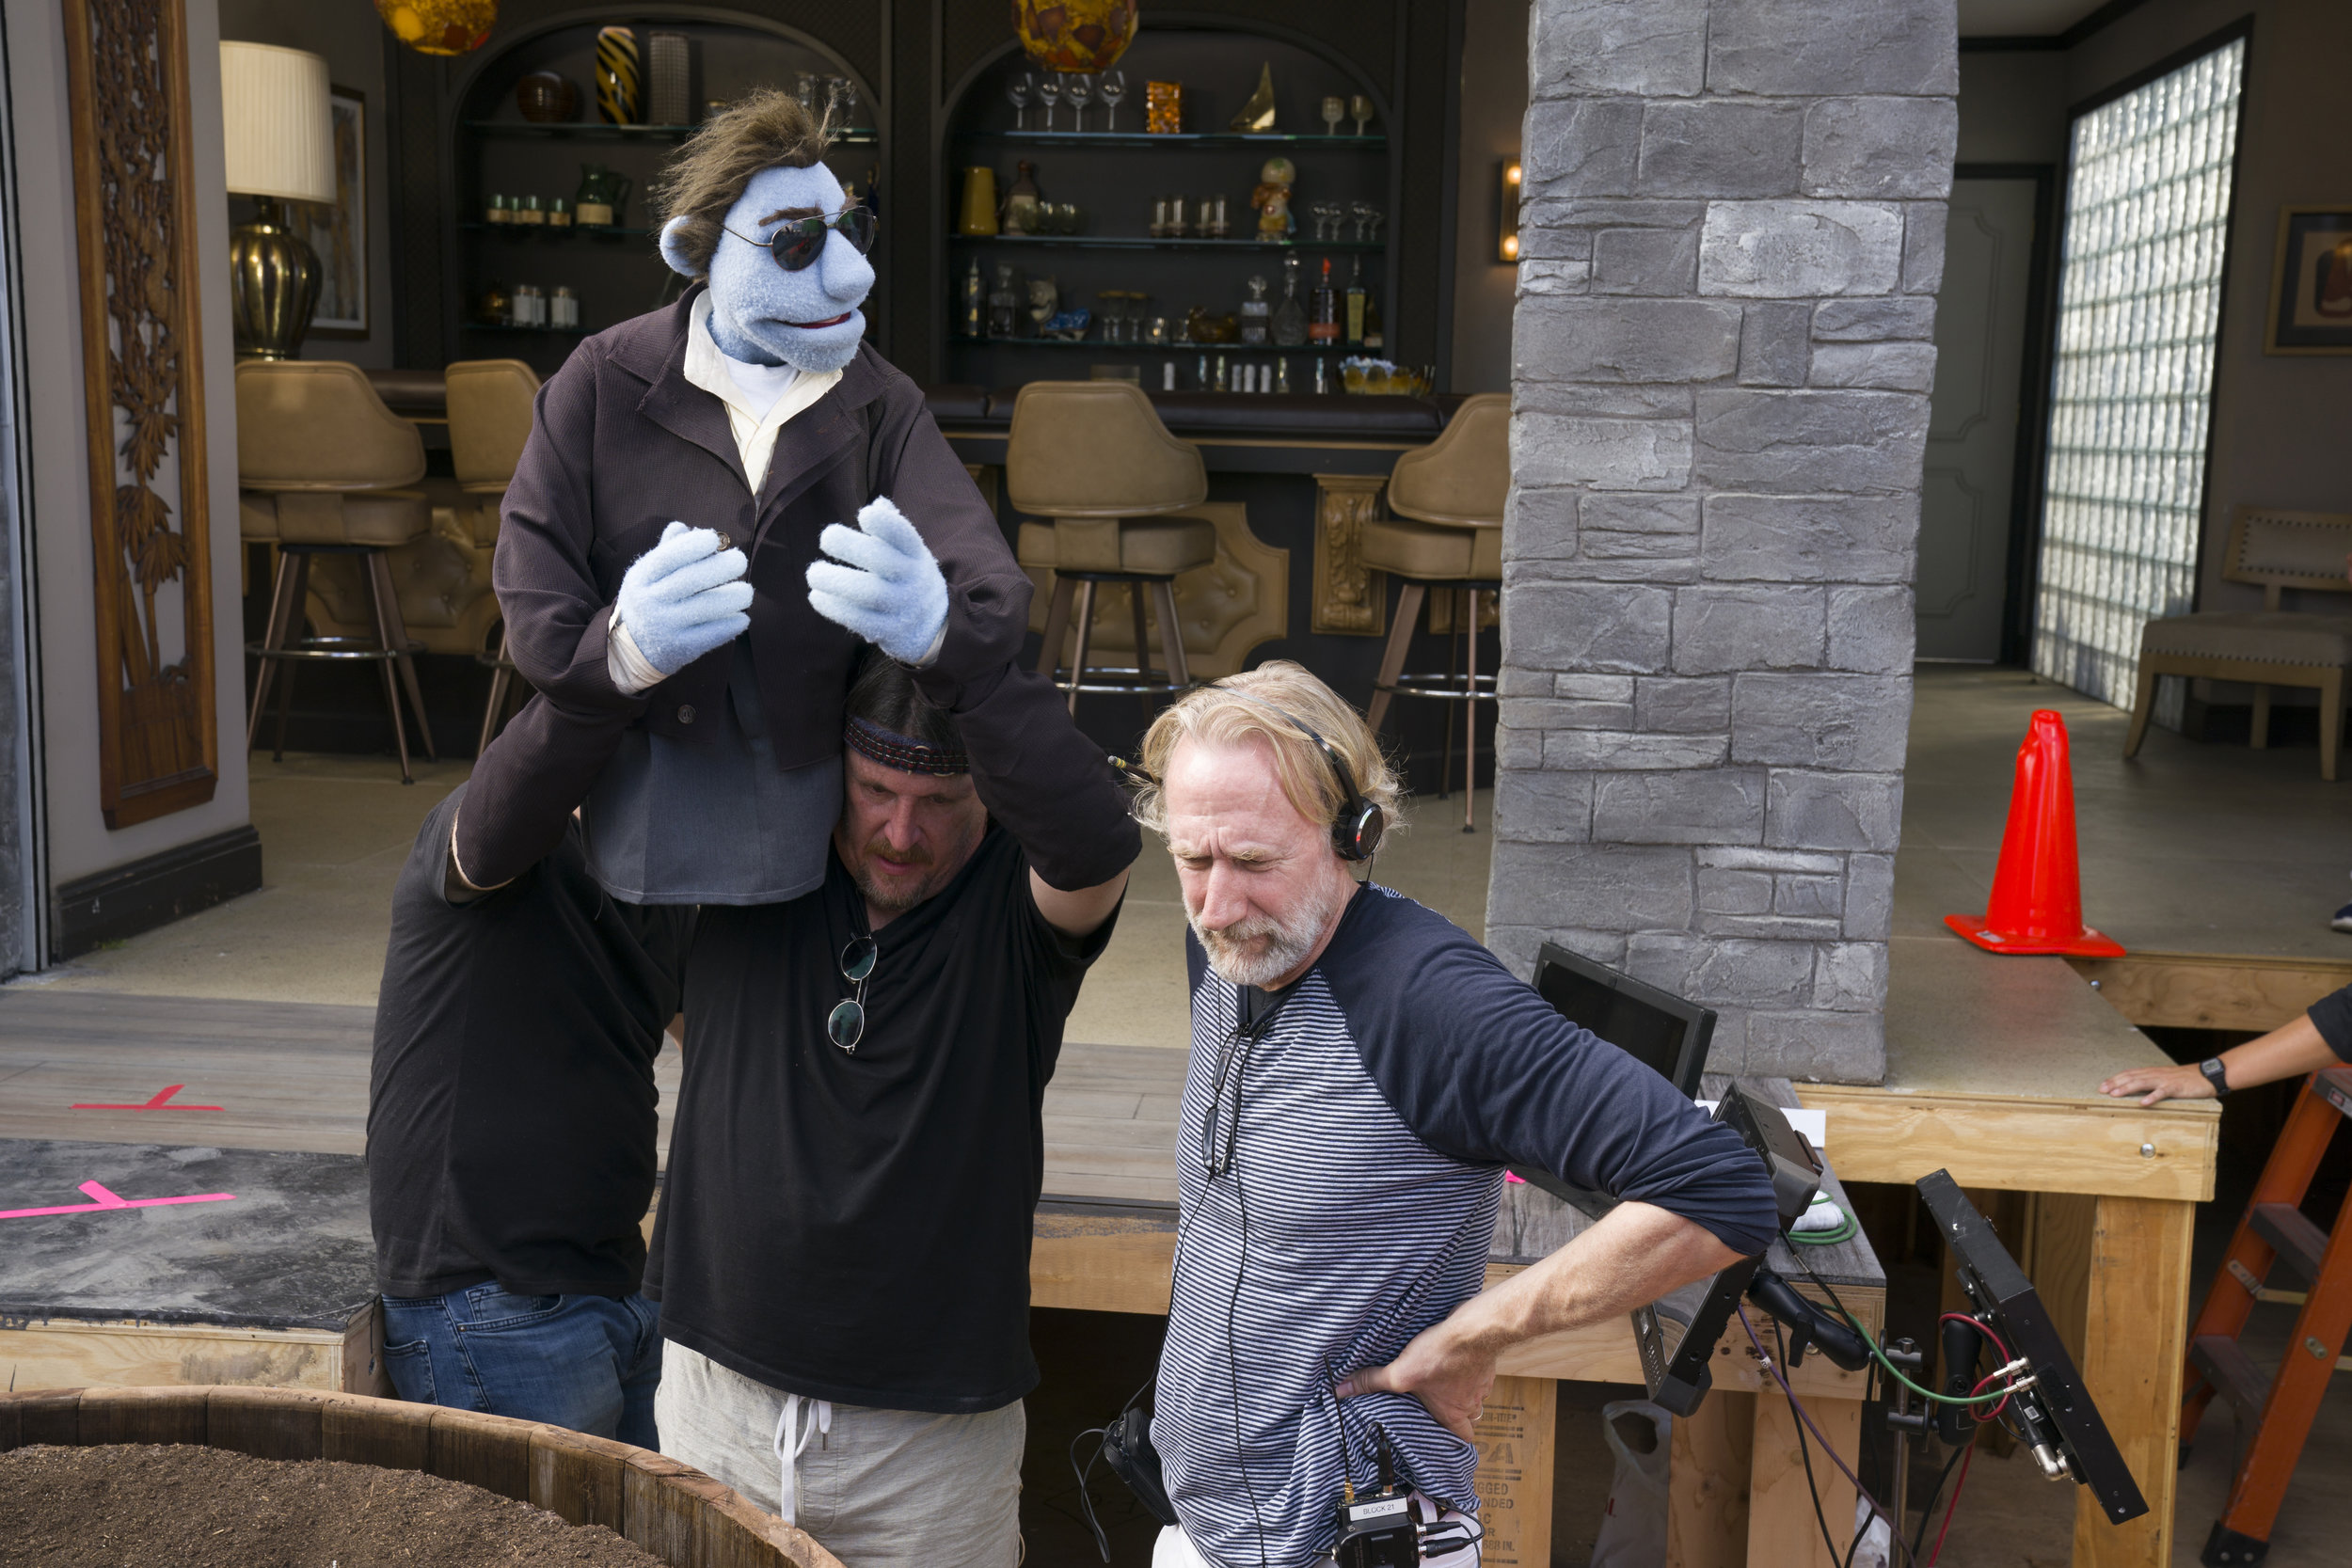 Director Henson tries to coax a great performance out of whole cloth in The Happytime Murders